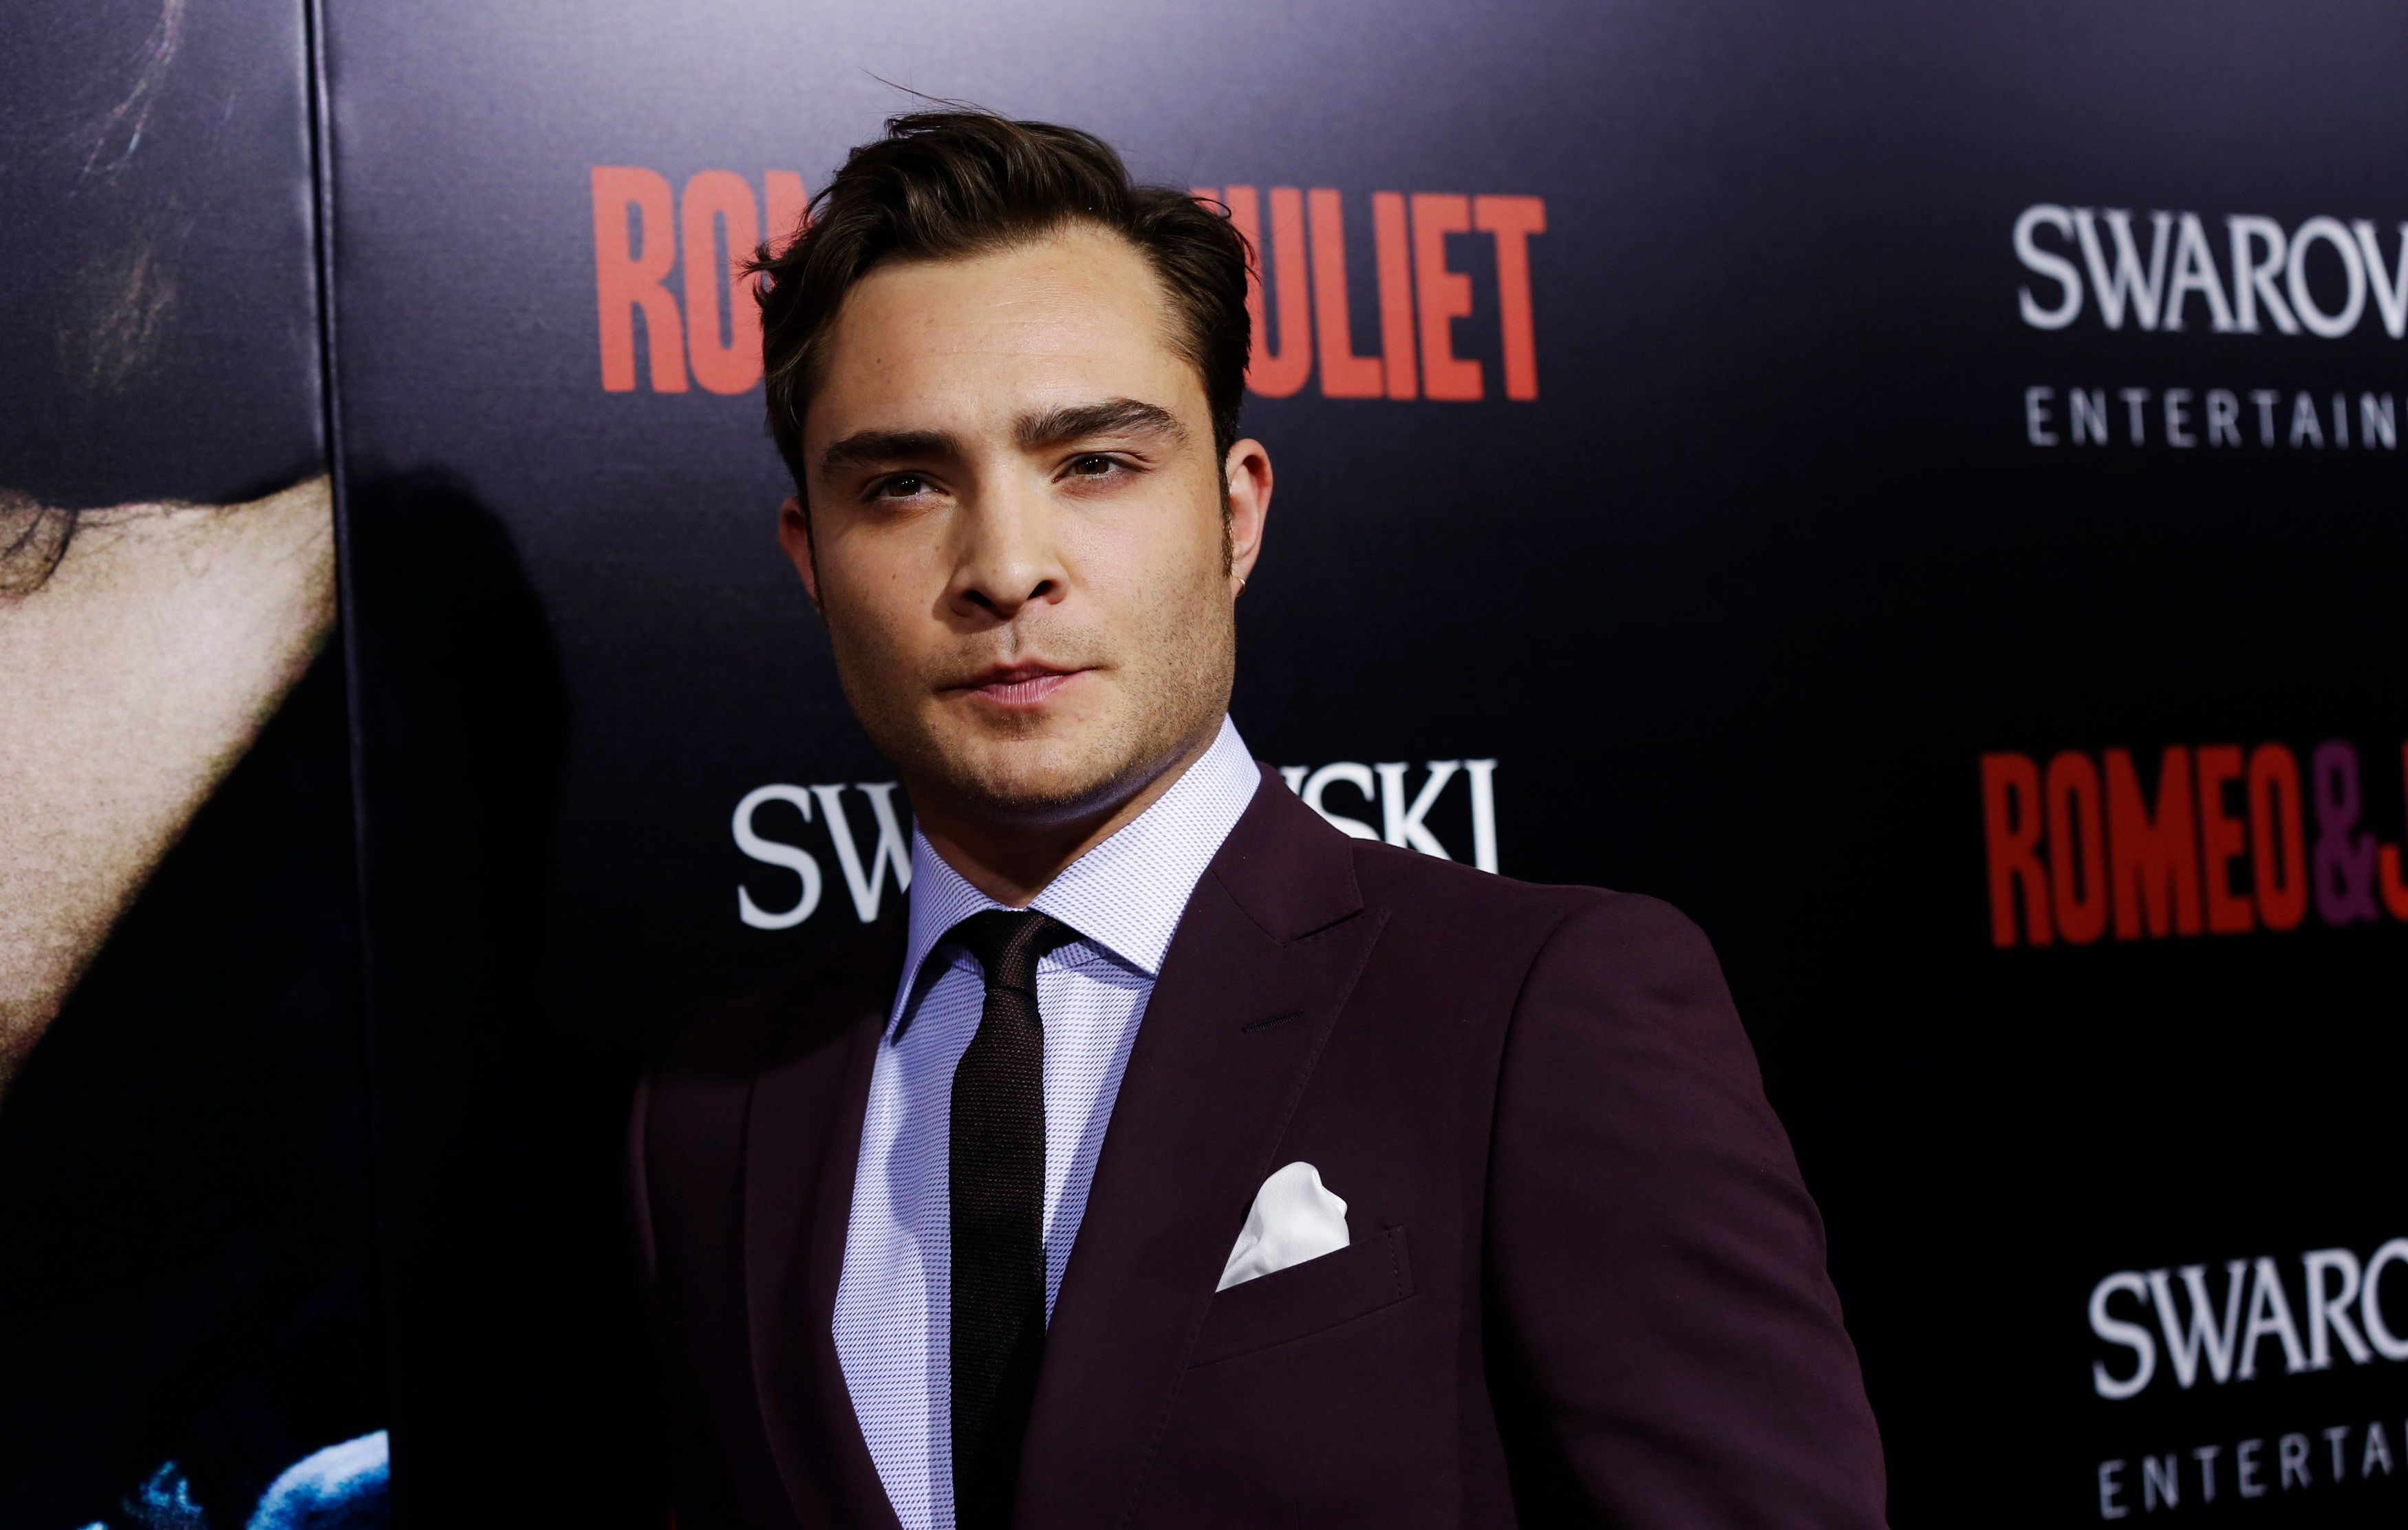 Gossip Girls Ed Westwick has been accused of rape